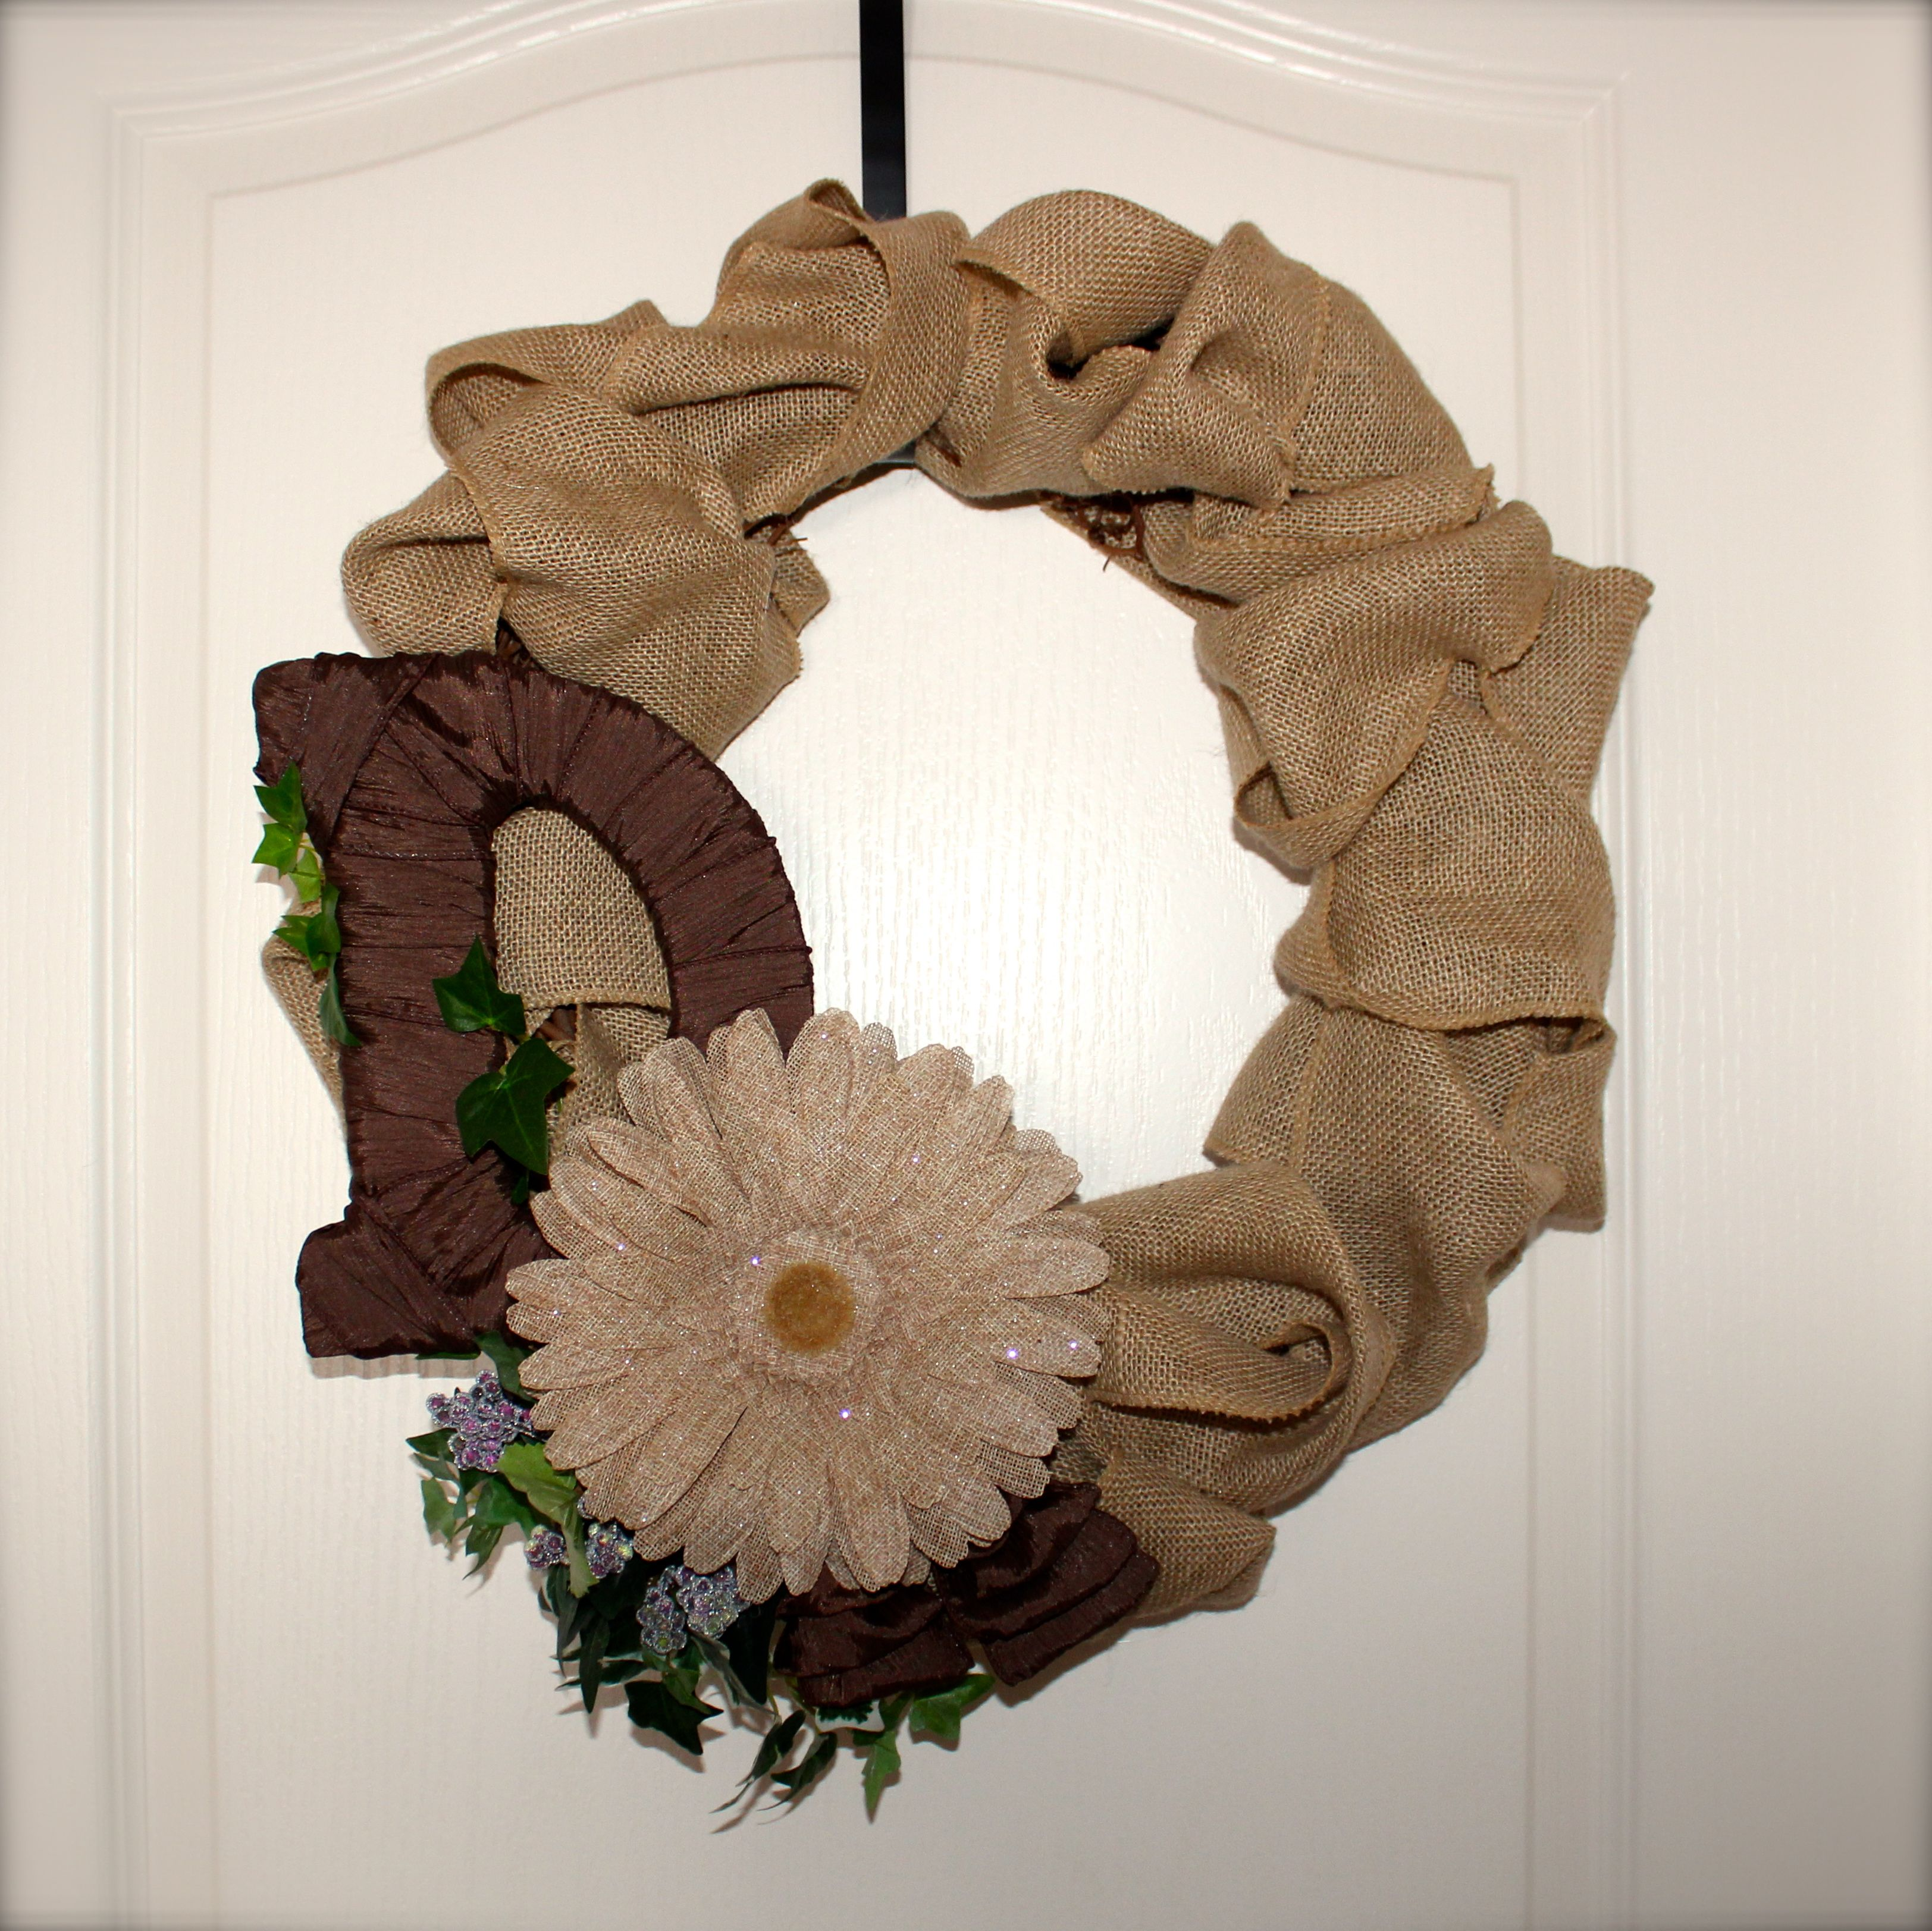 #Handmade by Laurel.  Wreaths #DIY with #burlap #wreath #crafts